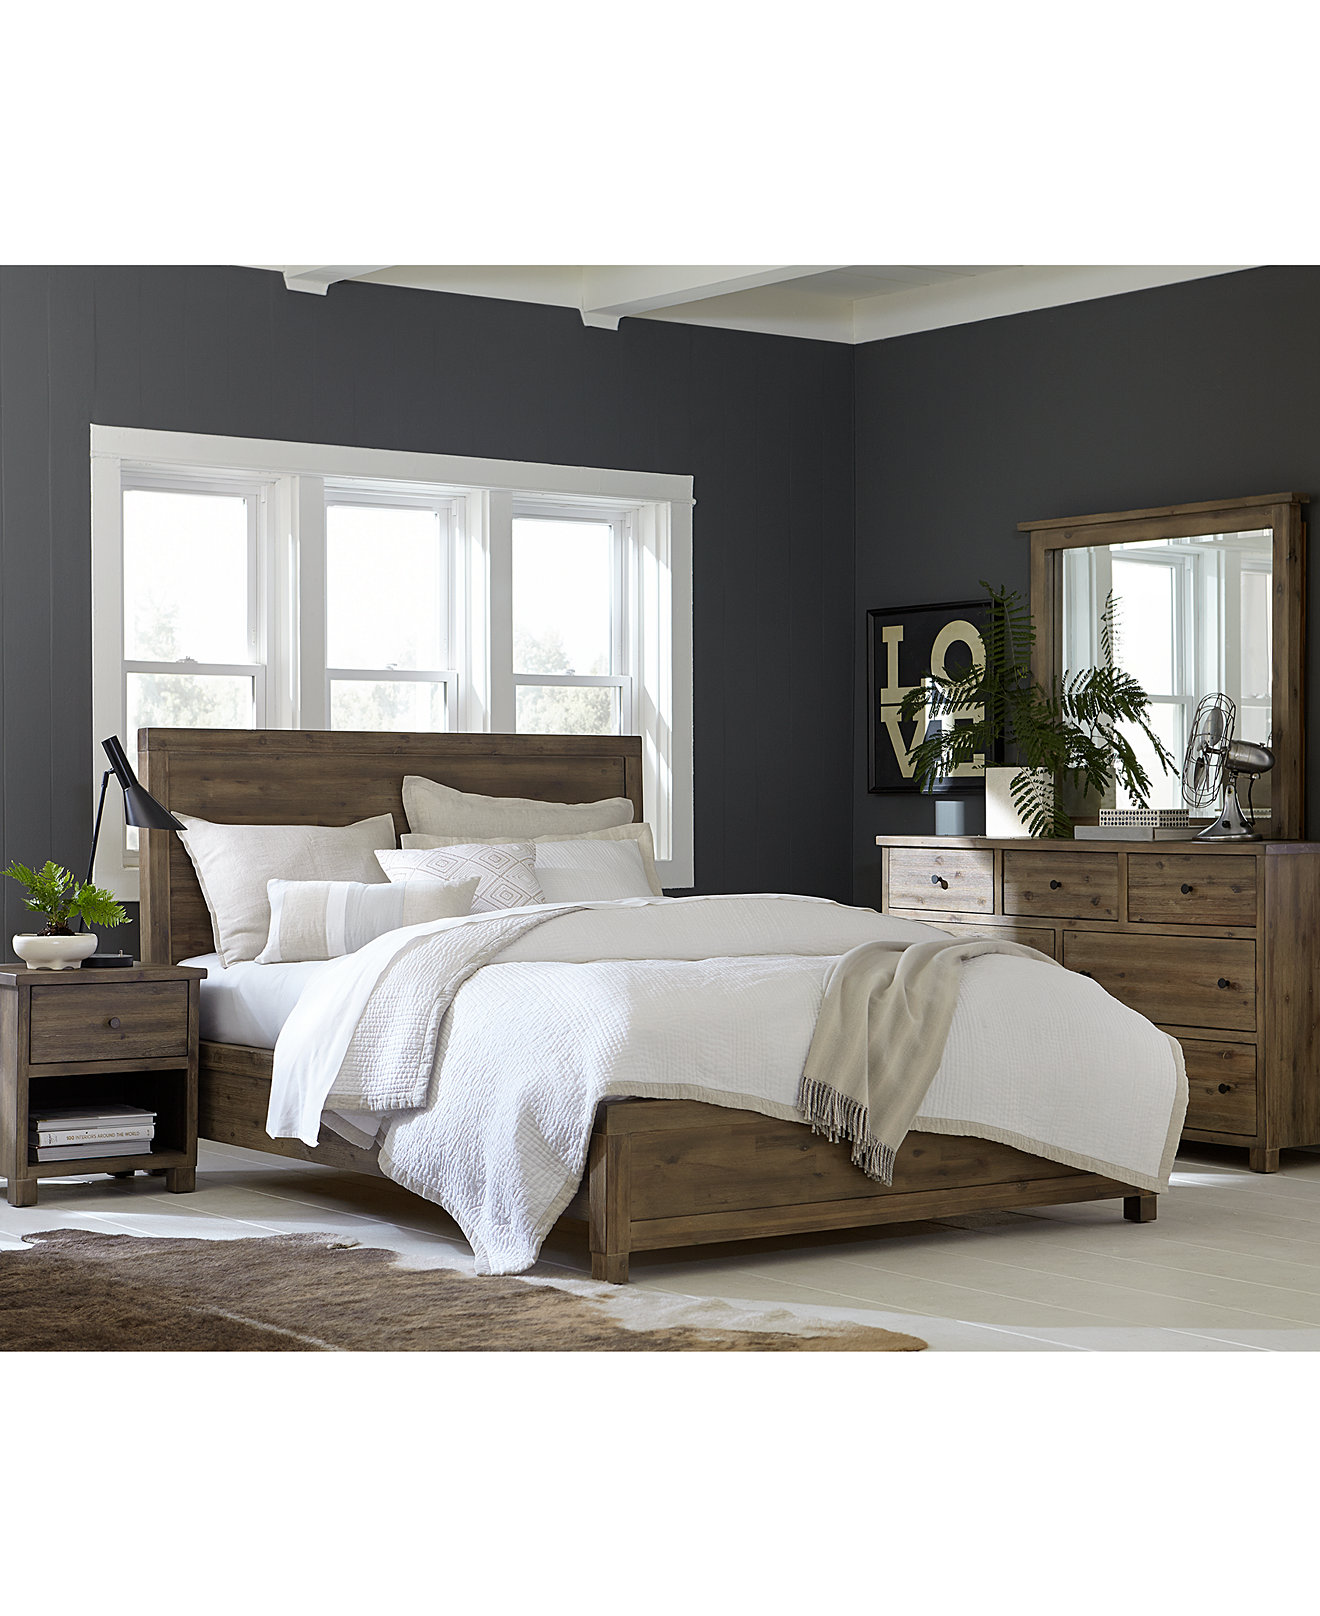 Macys Furniture Bedroom Canyon Bedroom Furniture Collection Only At Macys Furniture